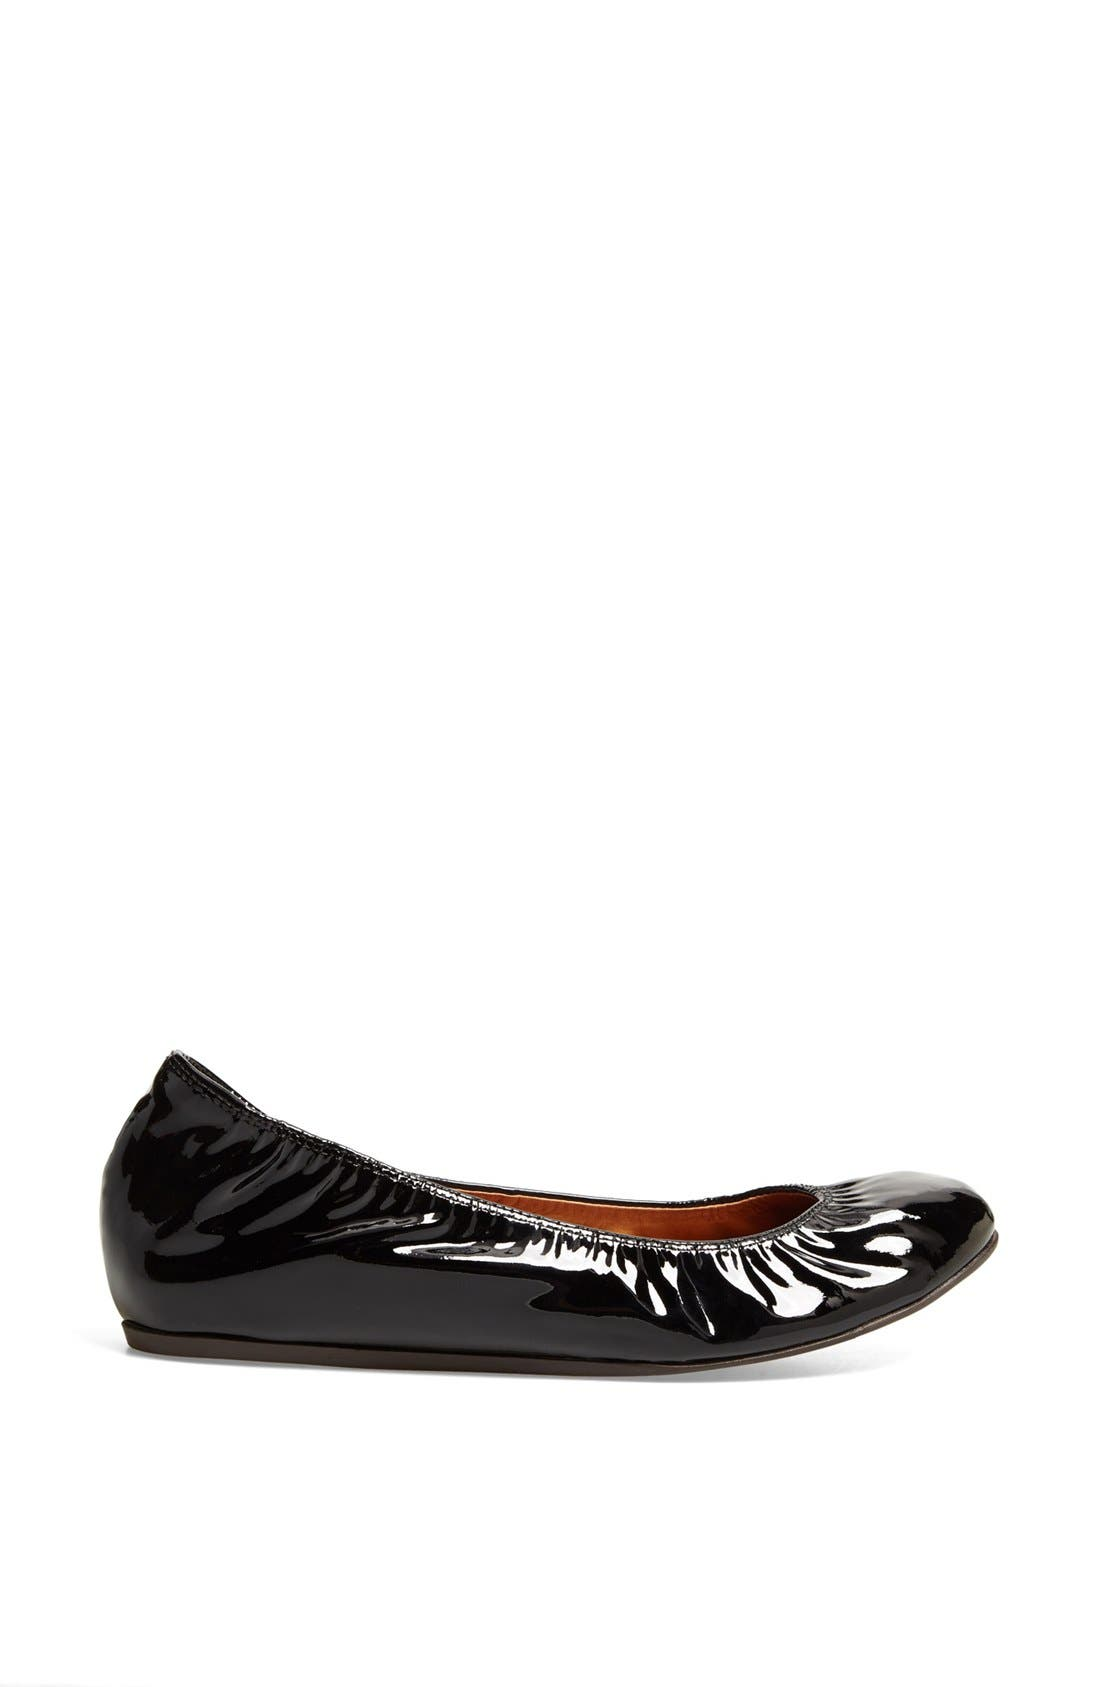 Alternate Image 4  - Lanvin Patent Leather Ballerina Flat